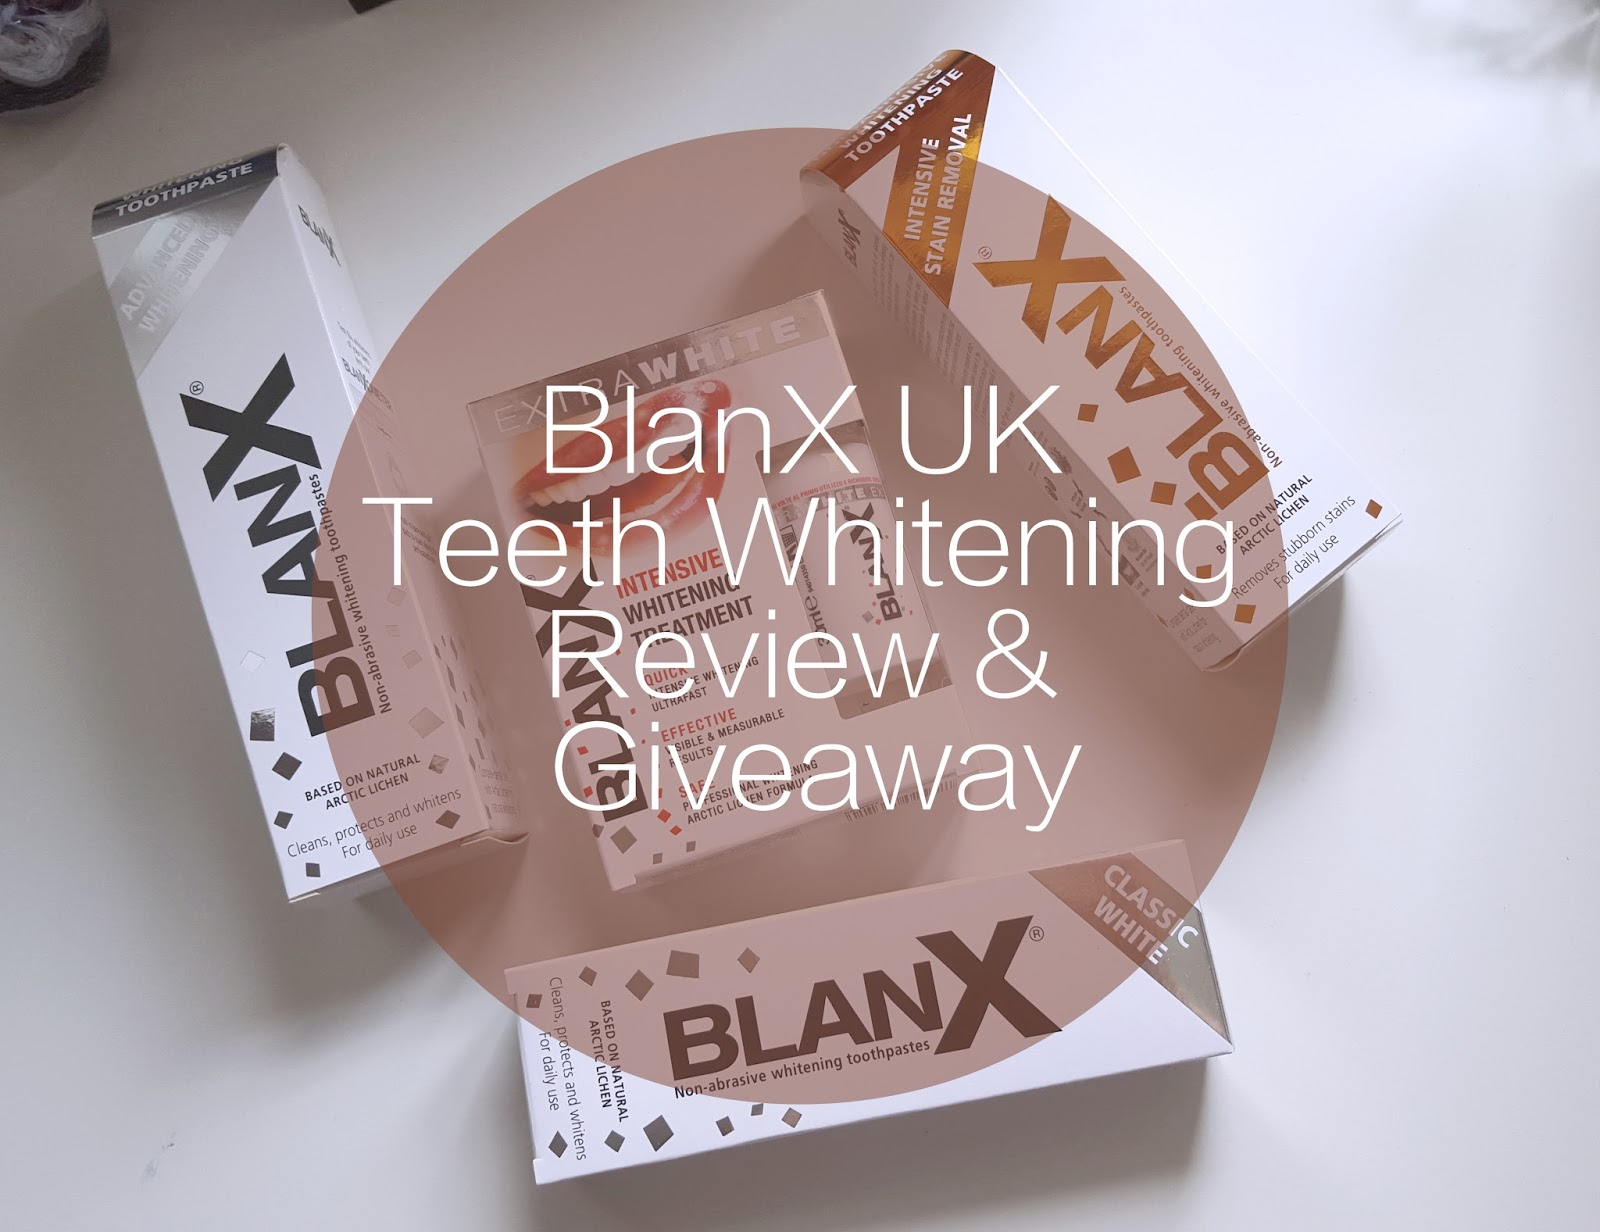 Blanx UK Teeth Whitening Naturally